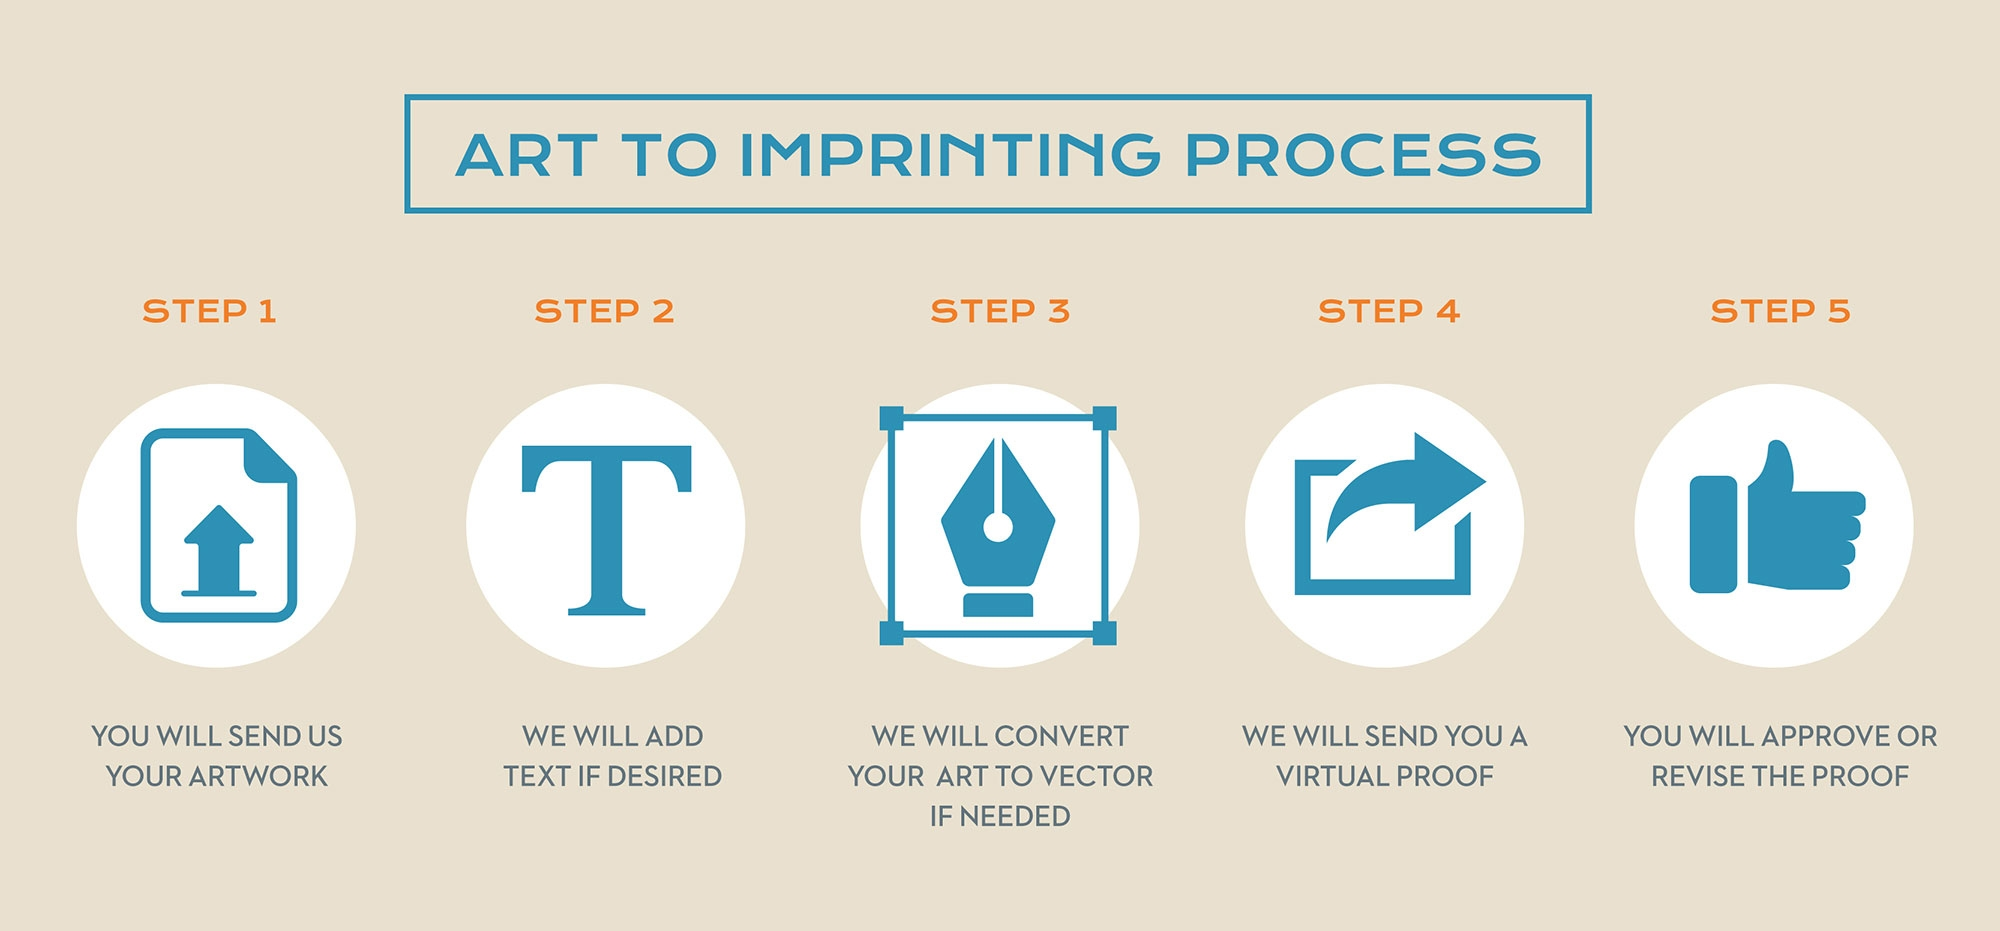 Art to Imprinting Process